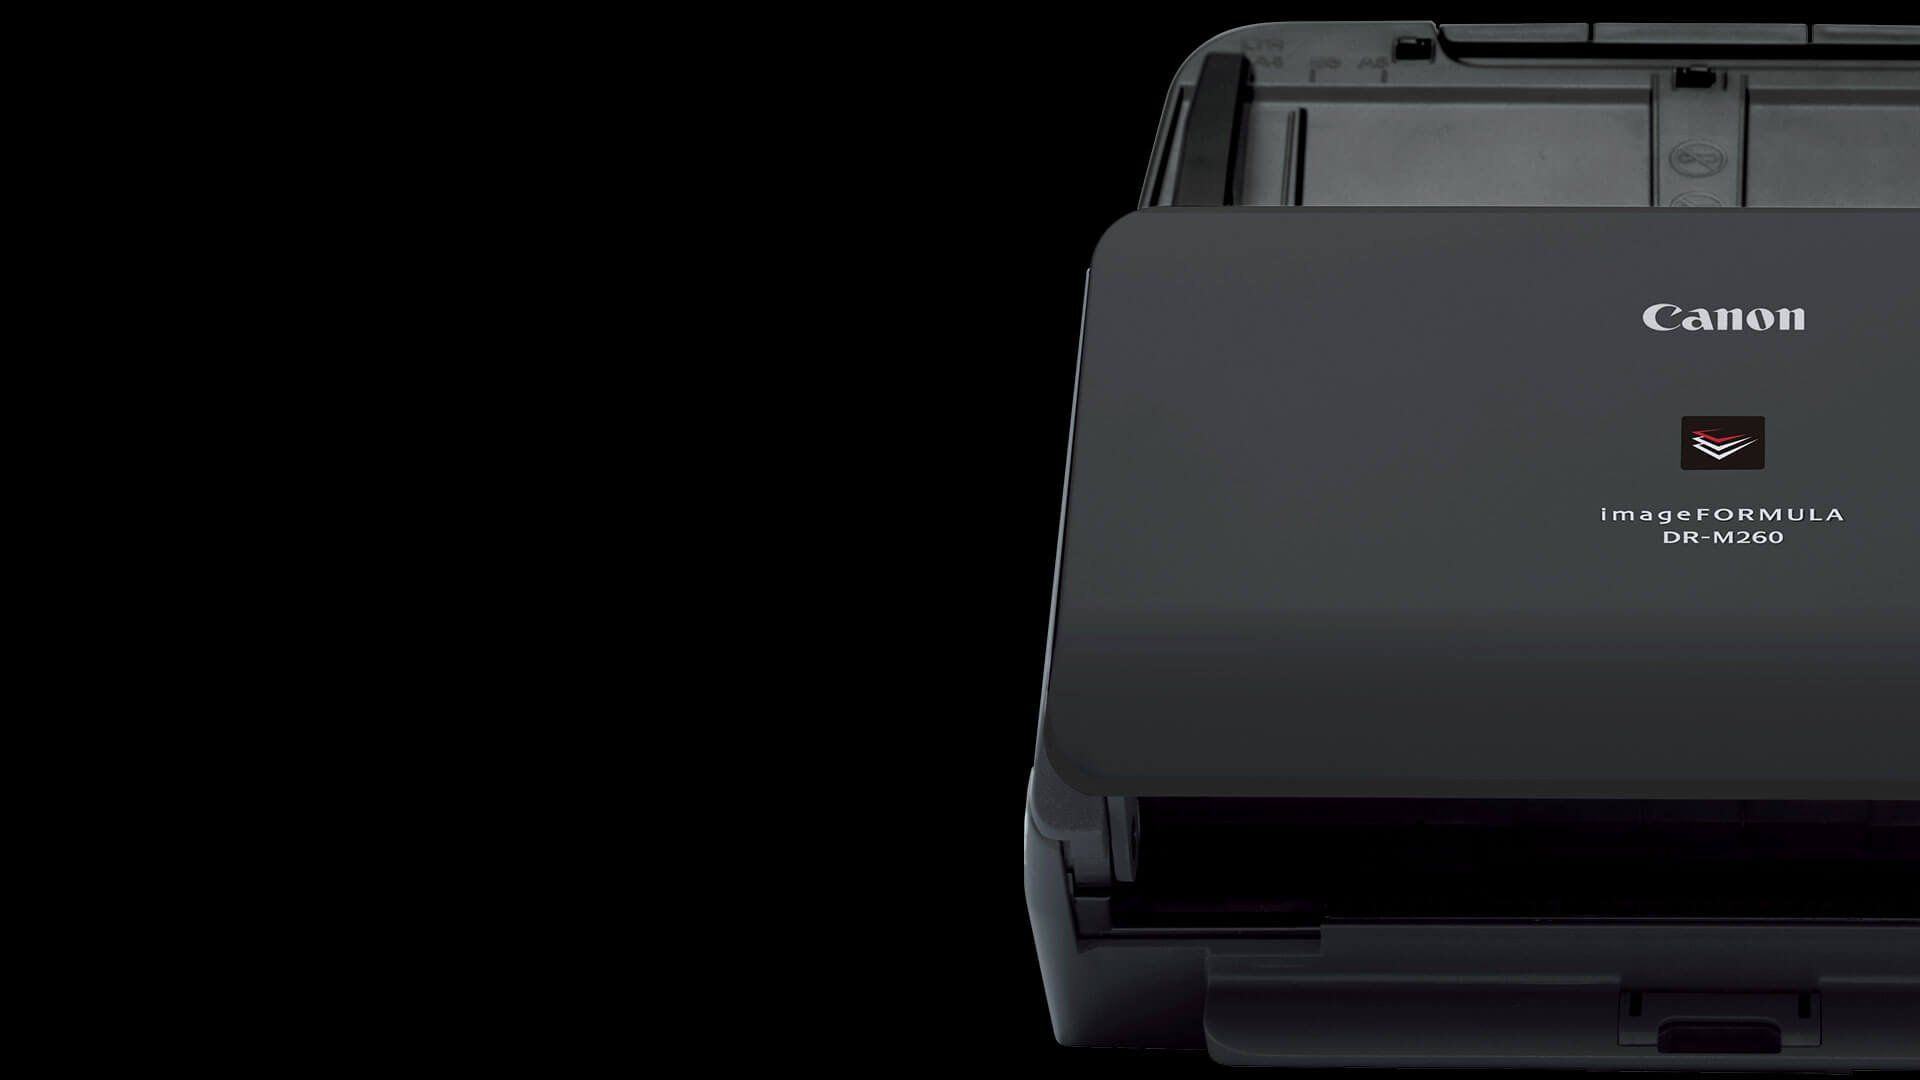 imageFORMULA DR-M260 - Scanners for Home & Office - Canon Ireland